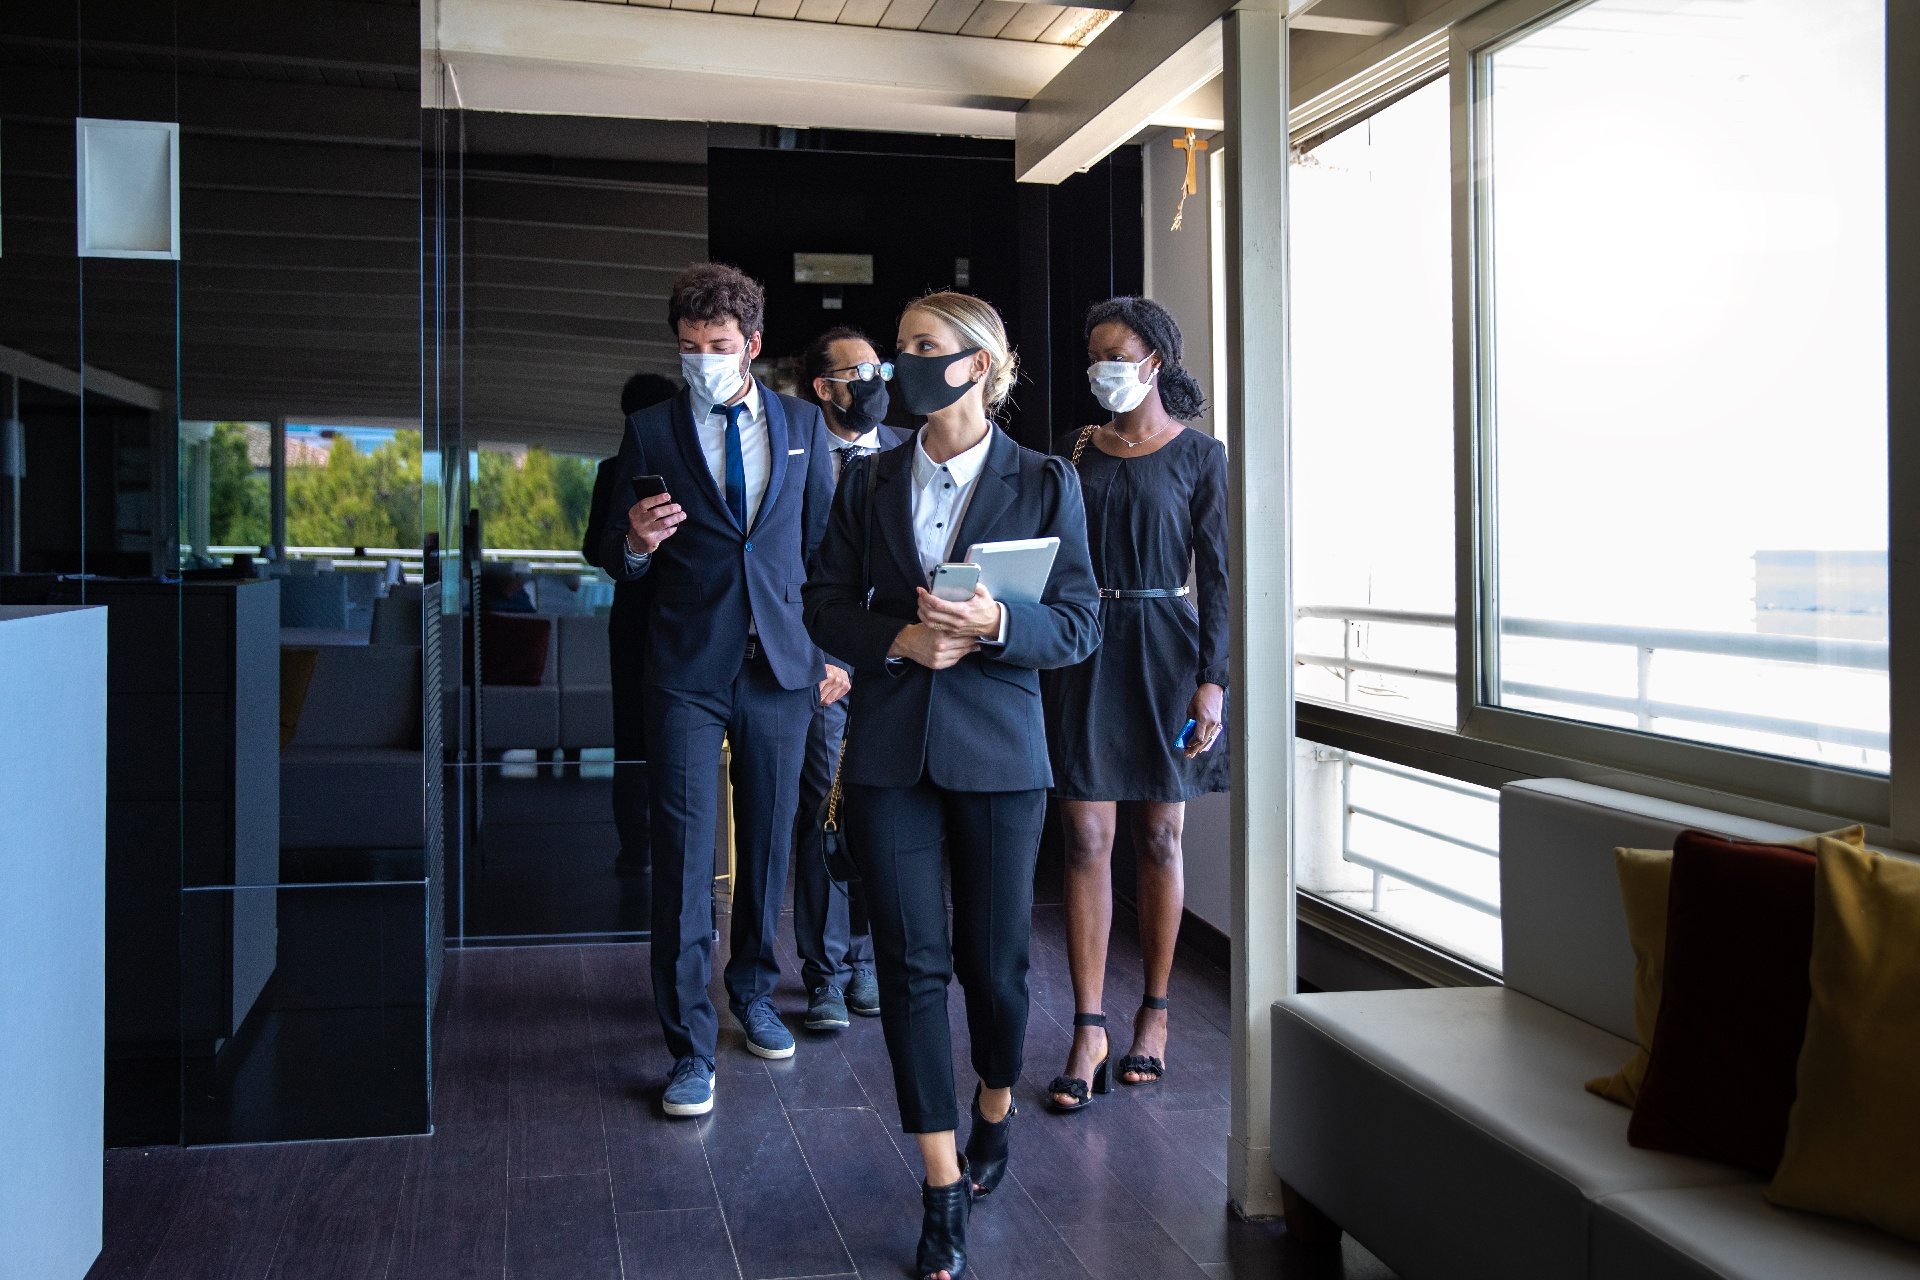 Office employees dressed in black with masks on in an office building